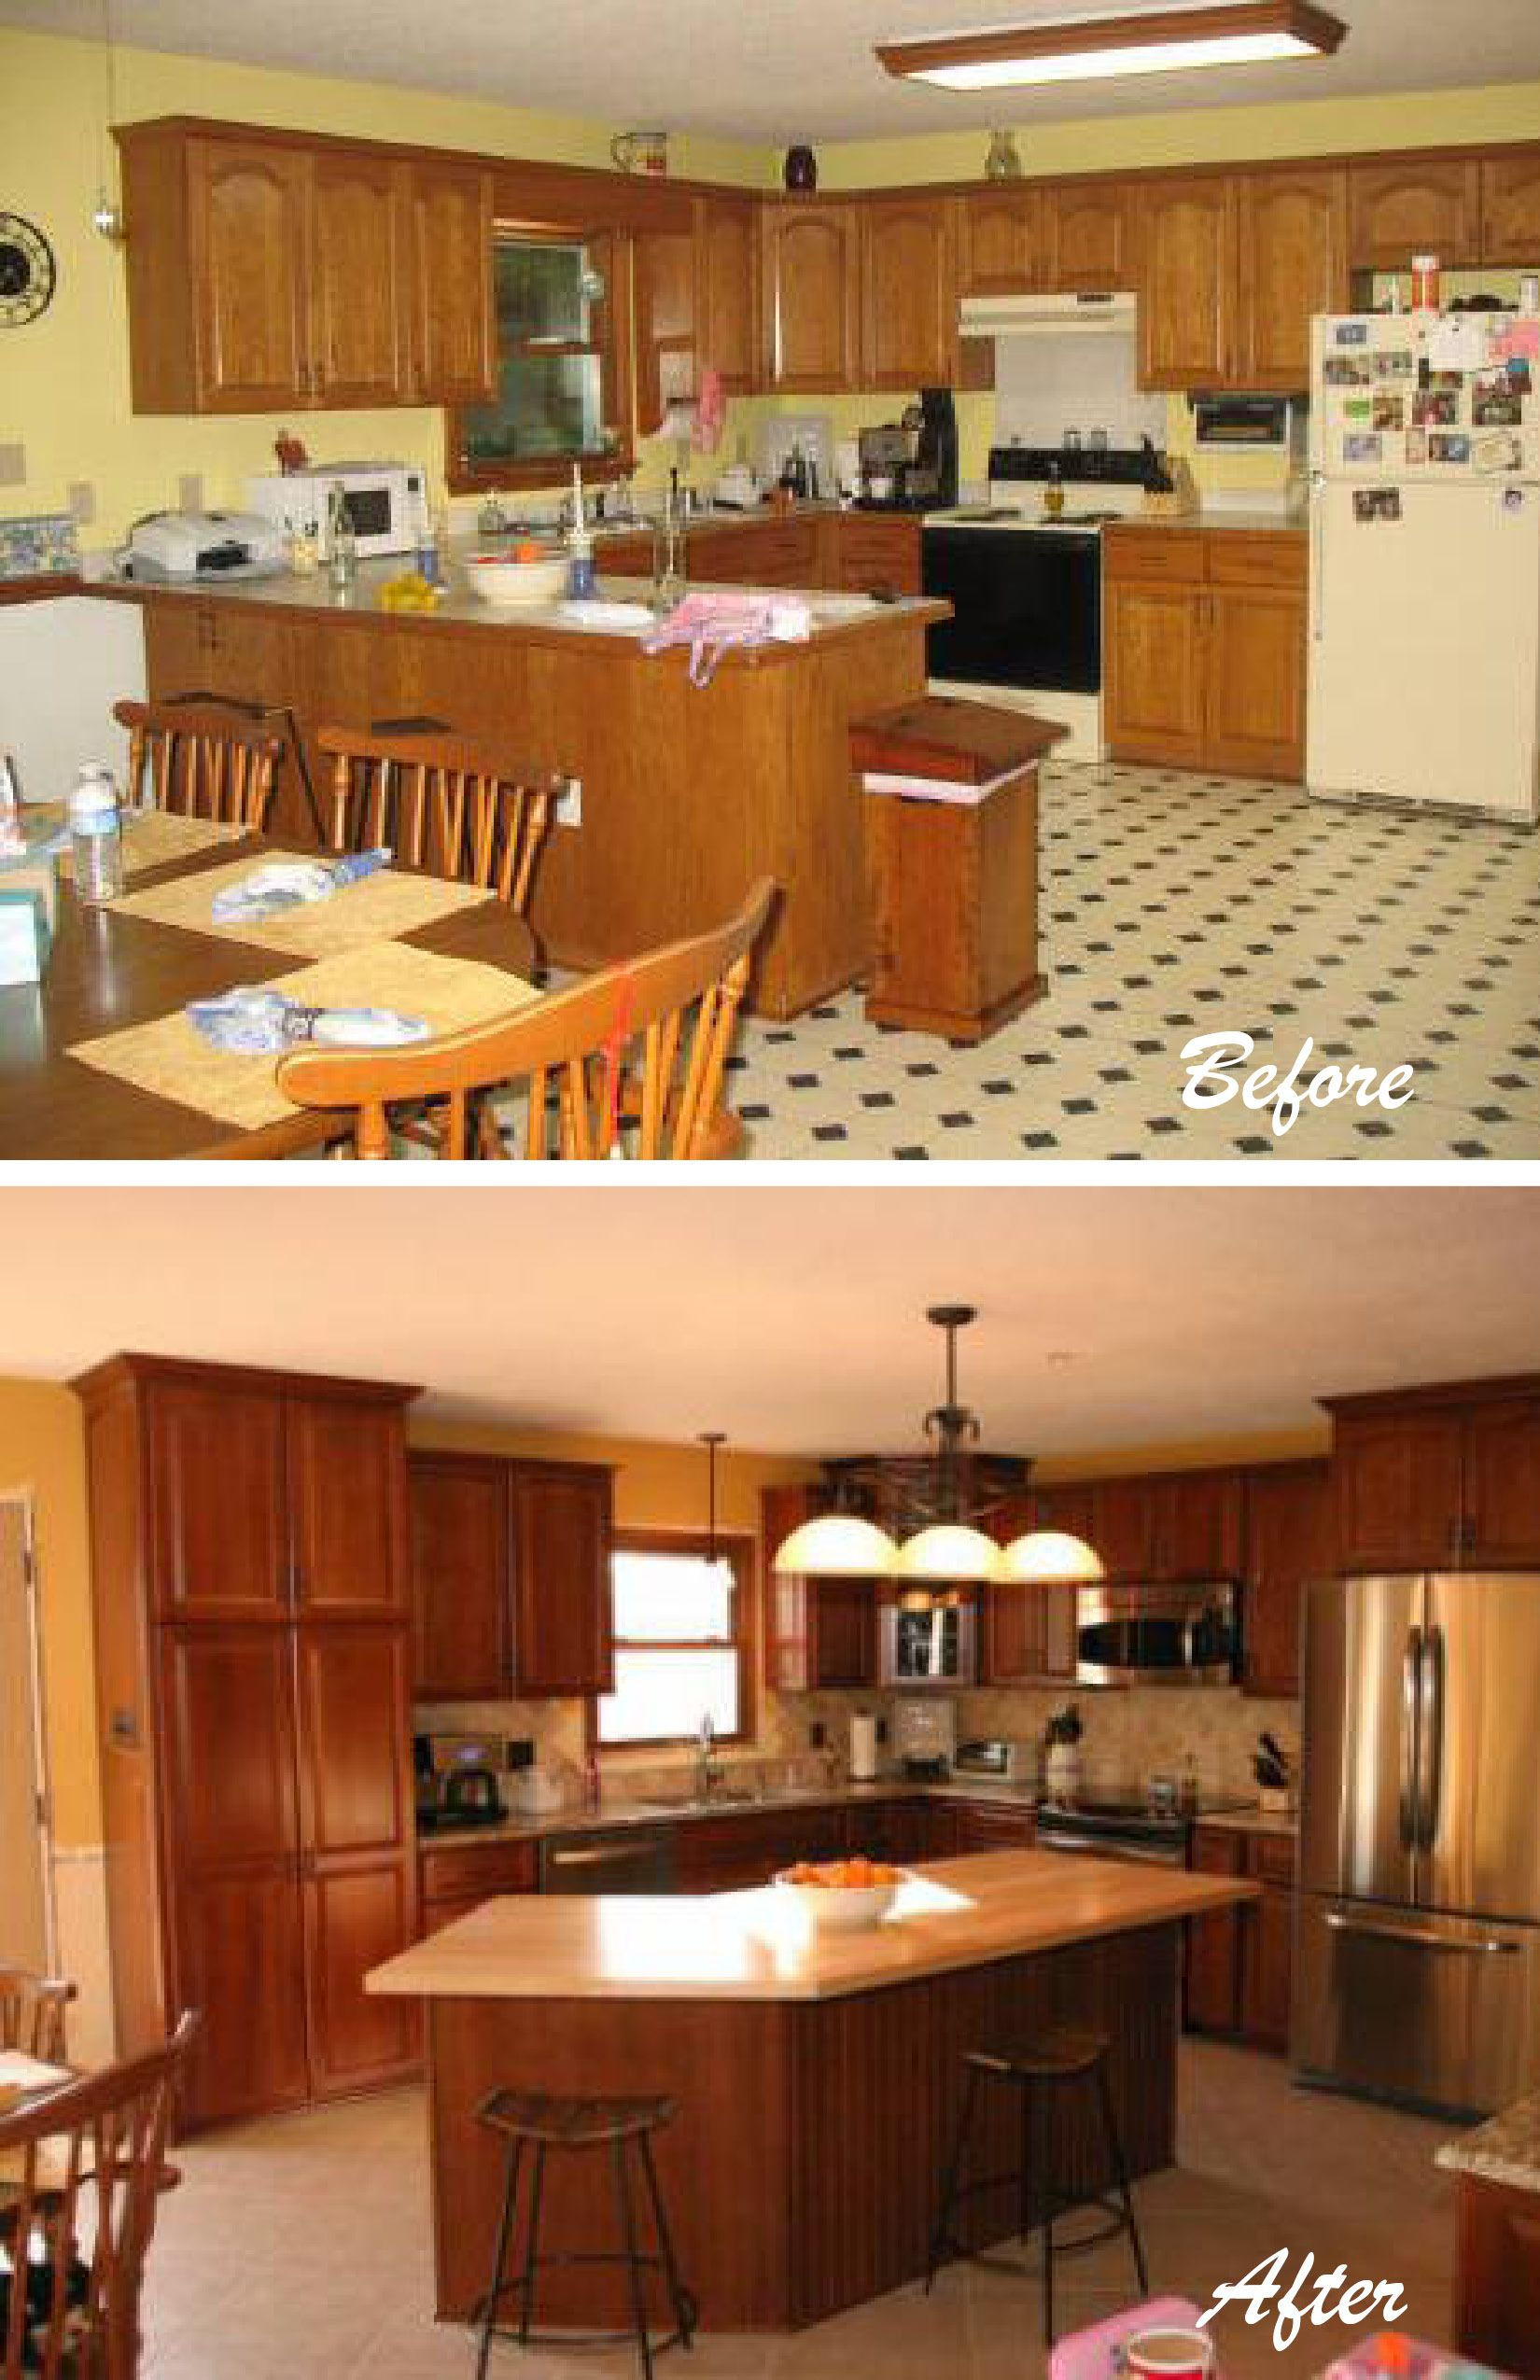 Our Client Wanted To Revamp Their 1980 S Kitchen We Totally Re Designed The Layout And A Affordable Kitchen Remodeling Kitchen Remodel Kitchen Cabinet Remodel